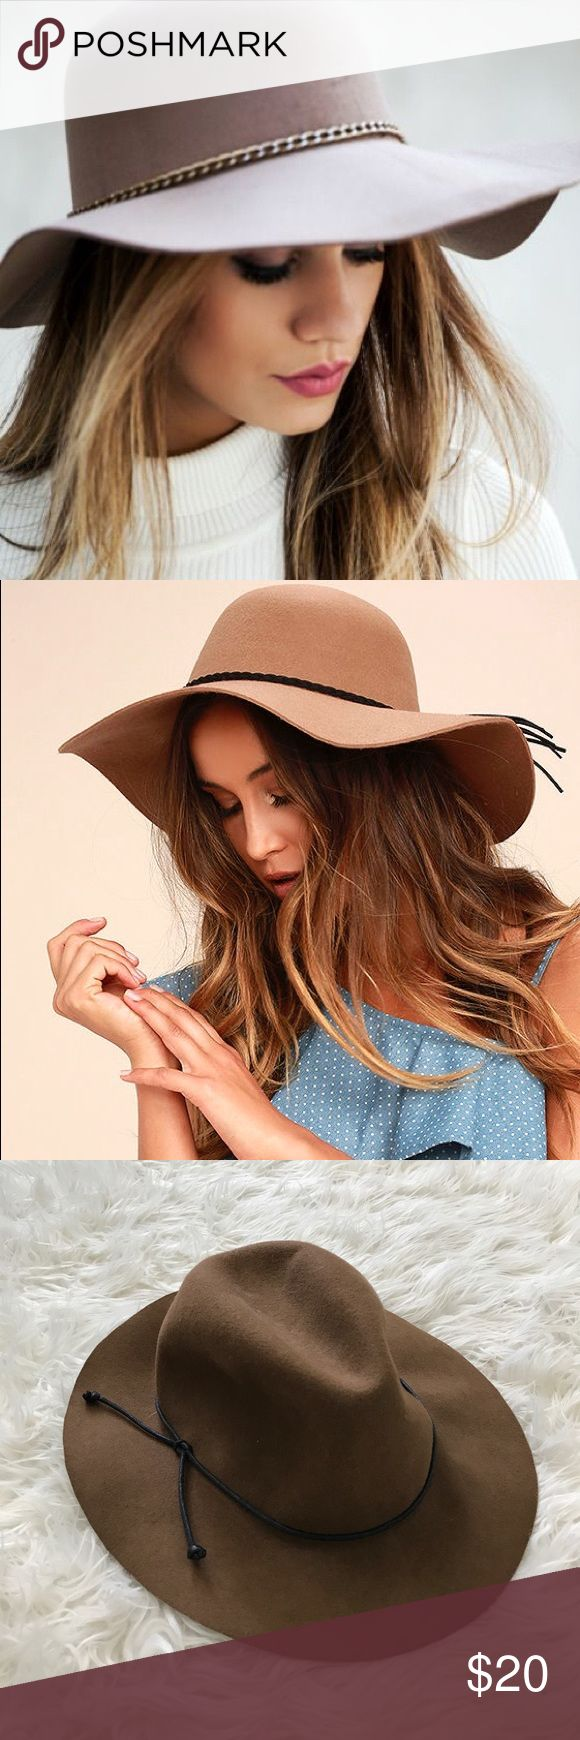 Stylish Boho Floppy Wool Hat Instantly elevate your boho style with our Women's Floppy Hat in Brown. A floppy brim shields you from the sun and the versatile brown color pairs well with a variety of outfits. Made of 100% wool, this women's hat is the perfect choice for a chilly fall or spring day. Material: 100% Wool Accessories